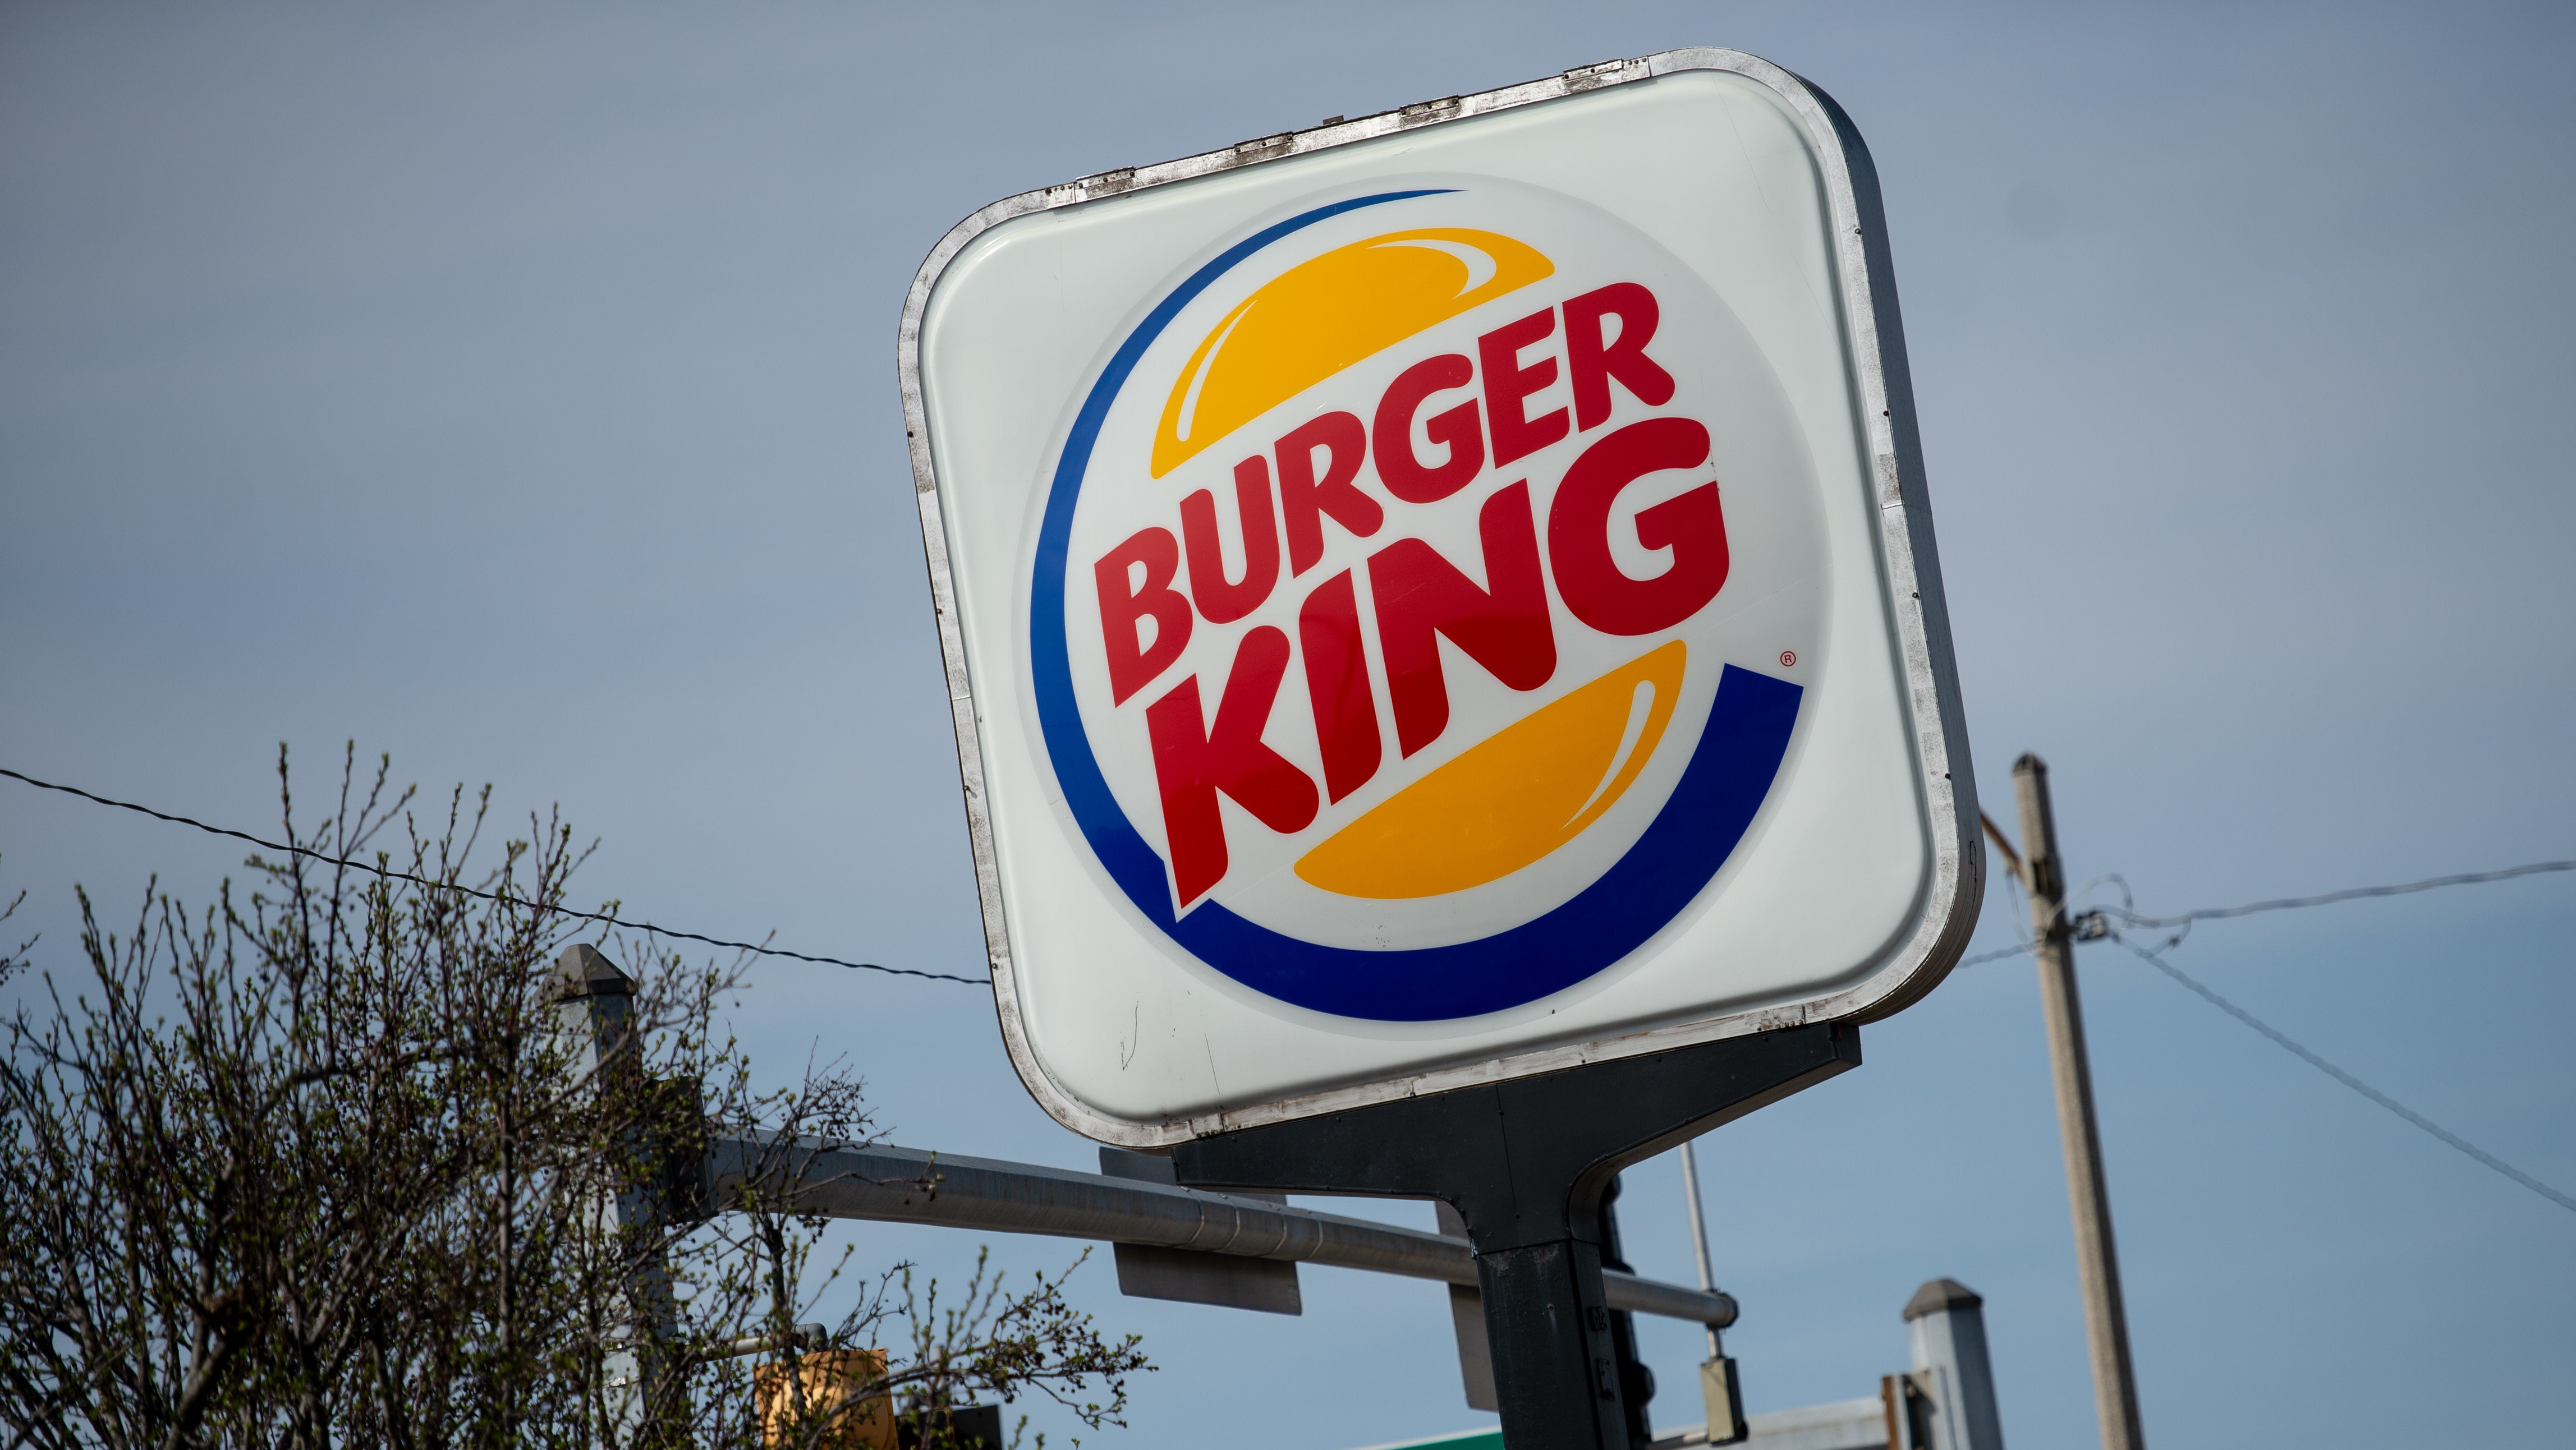 Burger King Figured Out How To Monetise Traffic Jams